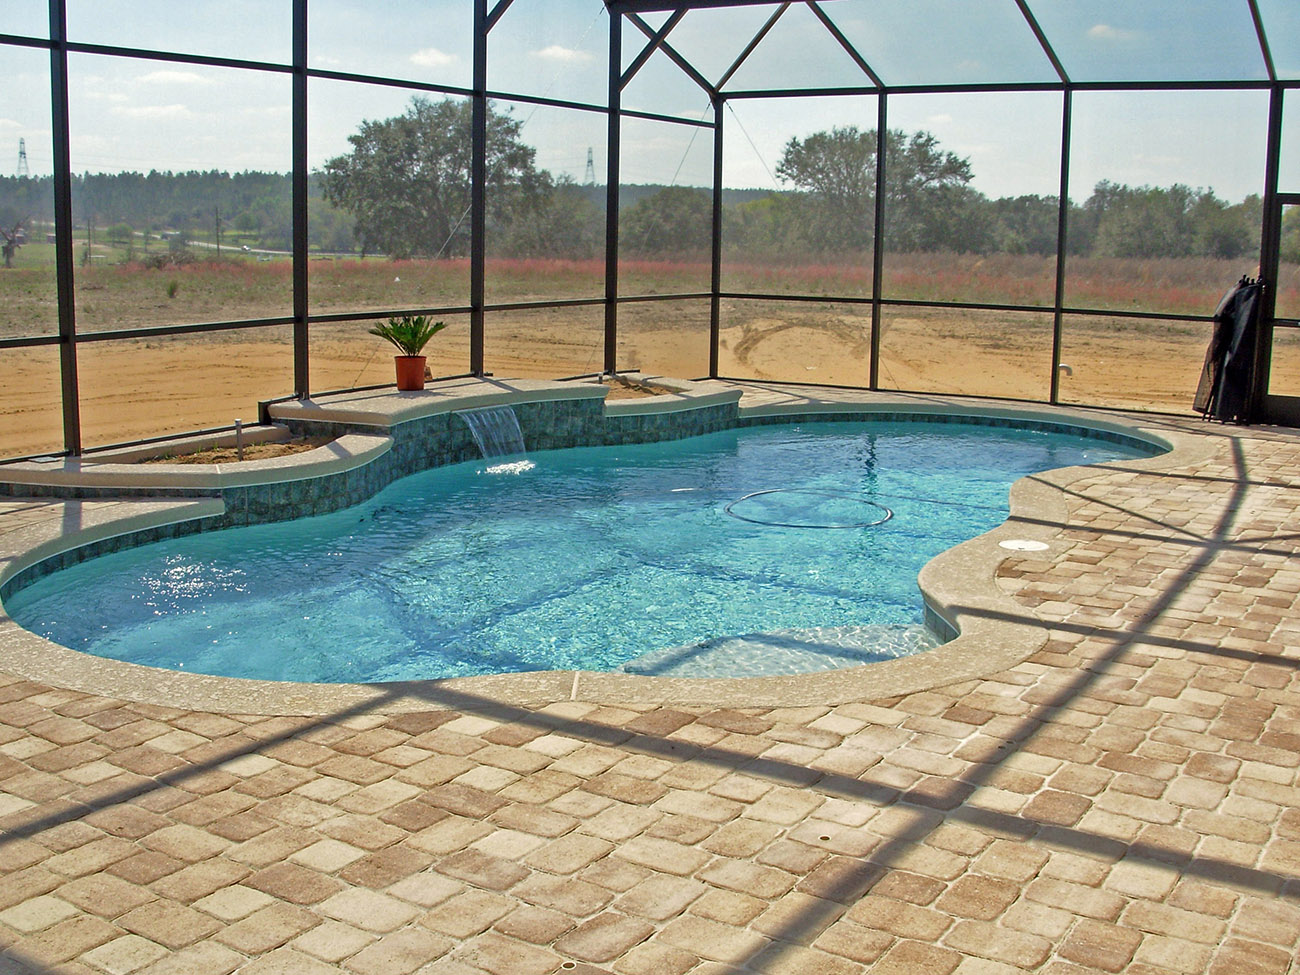 Swimming pools with water feature design ideas - Installing pavers around swimming pool ...